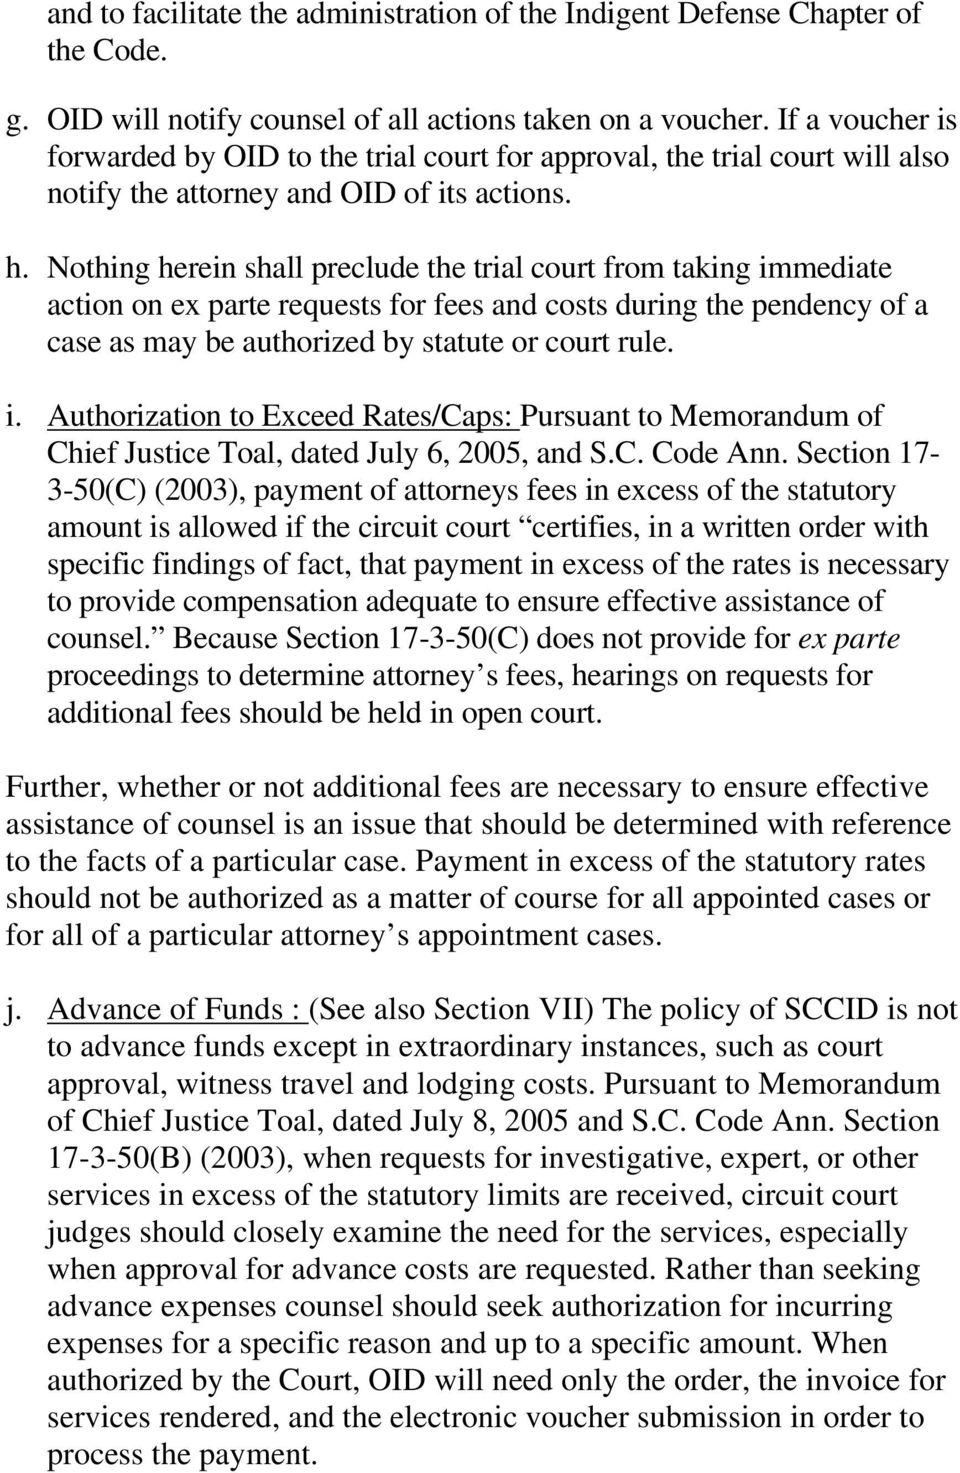 Nothing herein shall preclude the trial court from taking immediate action on ex parte requests for fees and costs during the pendency of a case as may be authorized by statute or court rule. i. Authorization to Exceed Rates/Caps: Pursuant to Memorandum of Chief Justice Toal, dated July 6, 2005, and S.